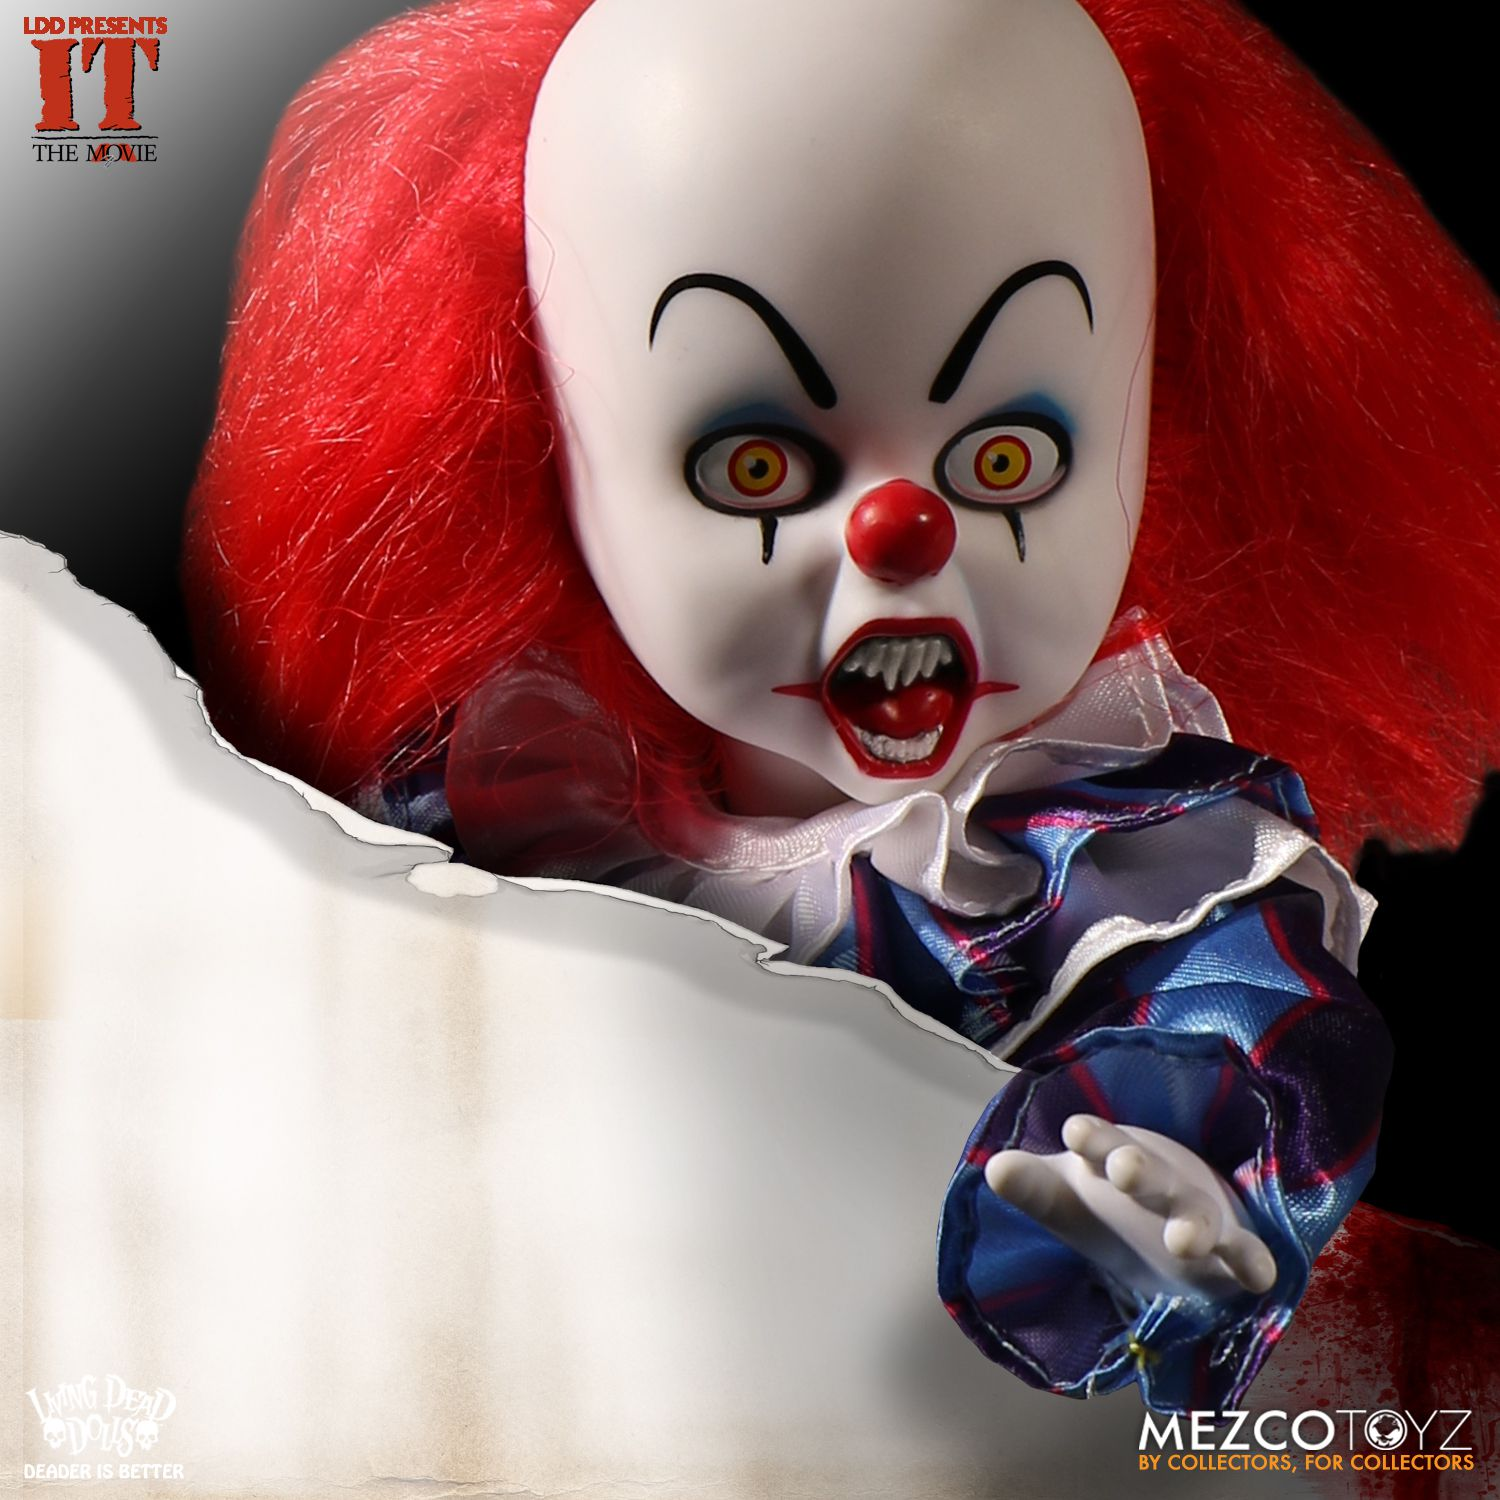 Mezco Toyz: Living Dead Doll's Stephen King's IT Geliyor!